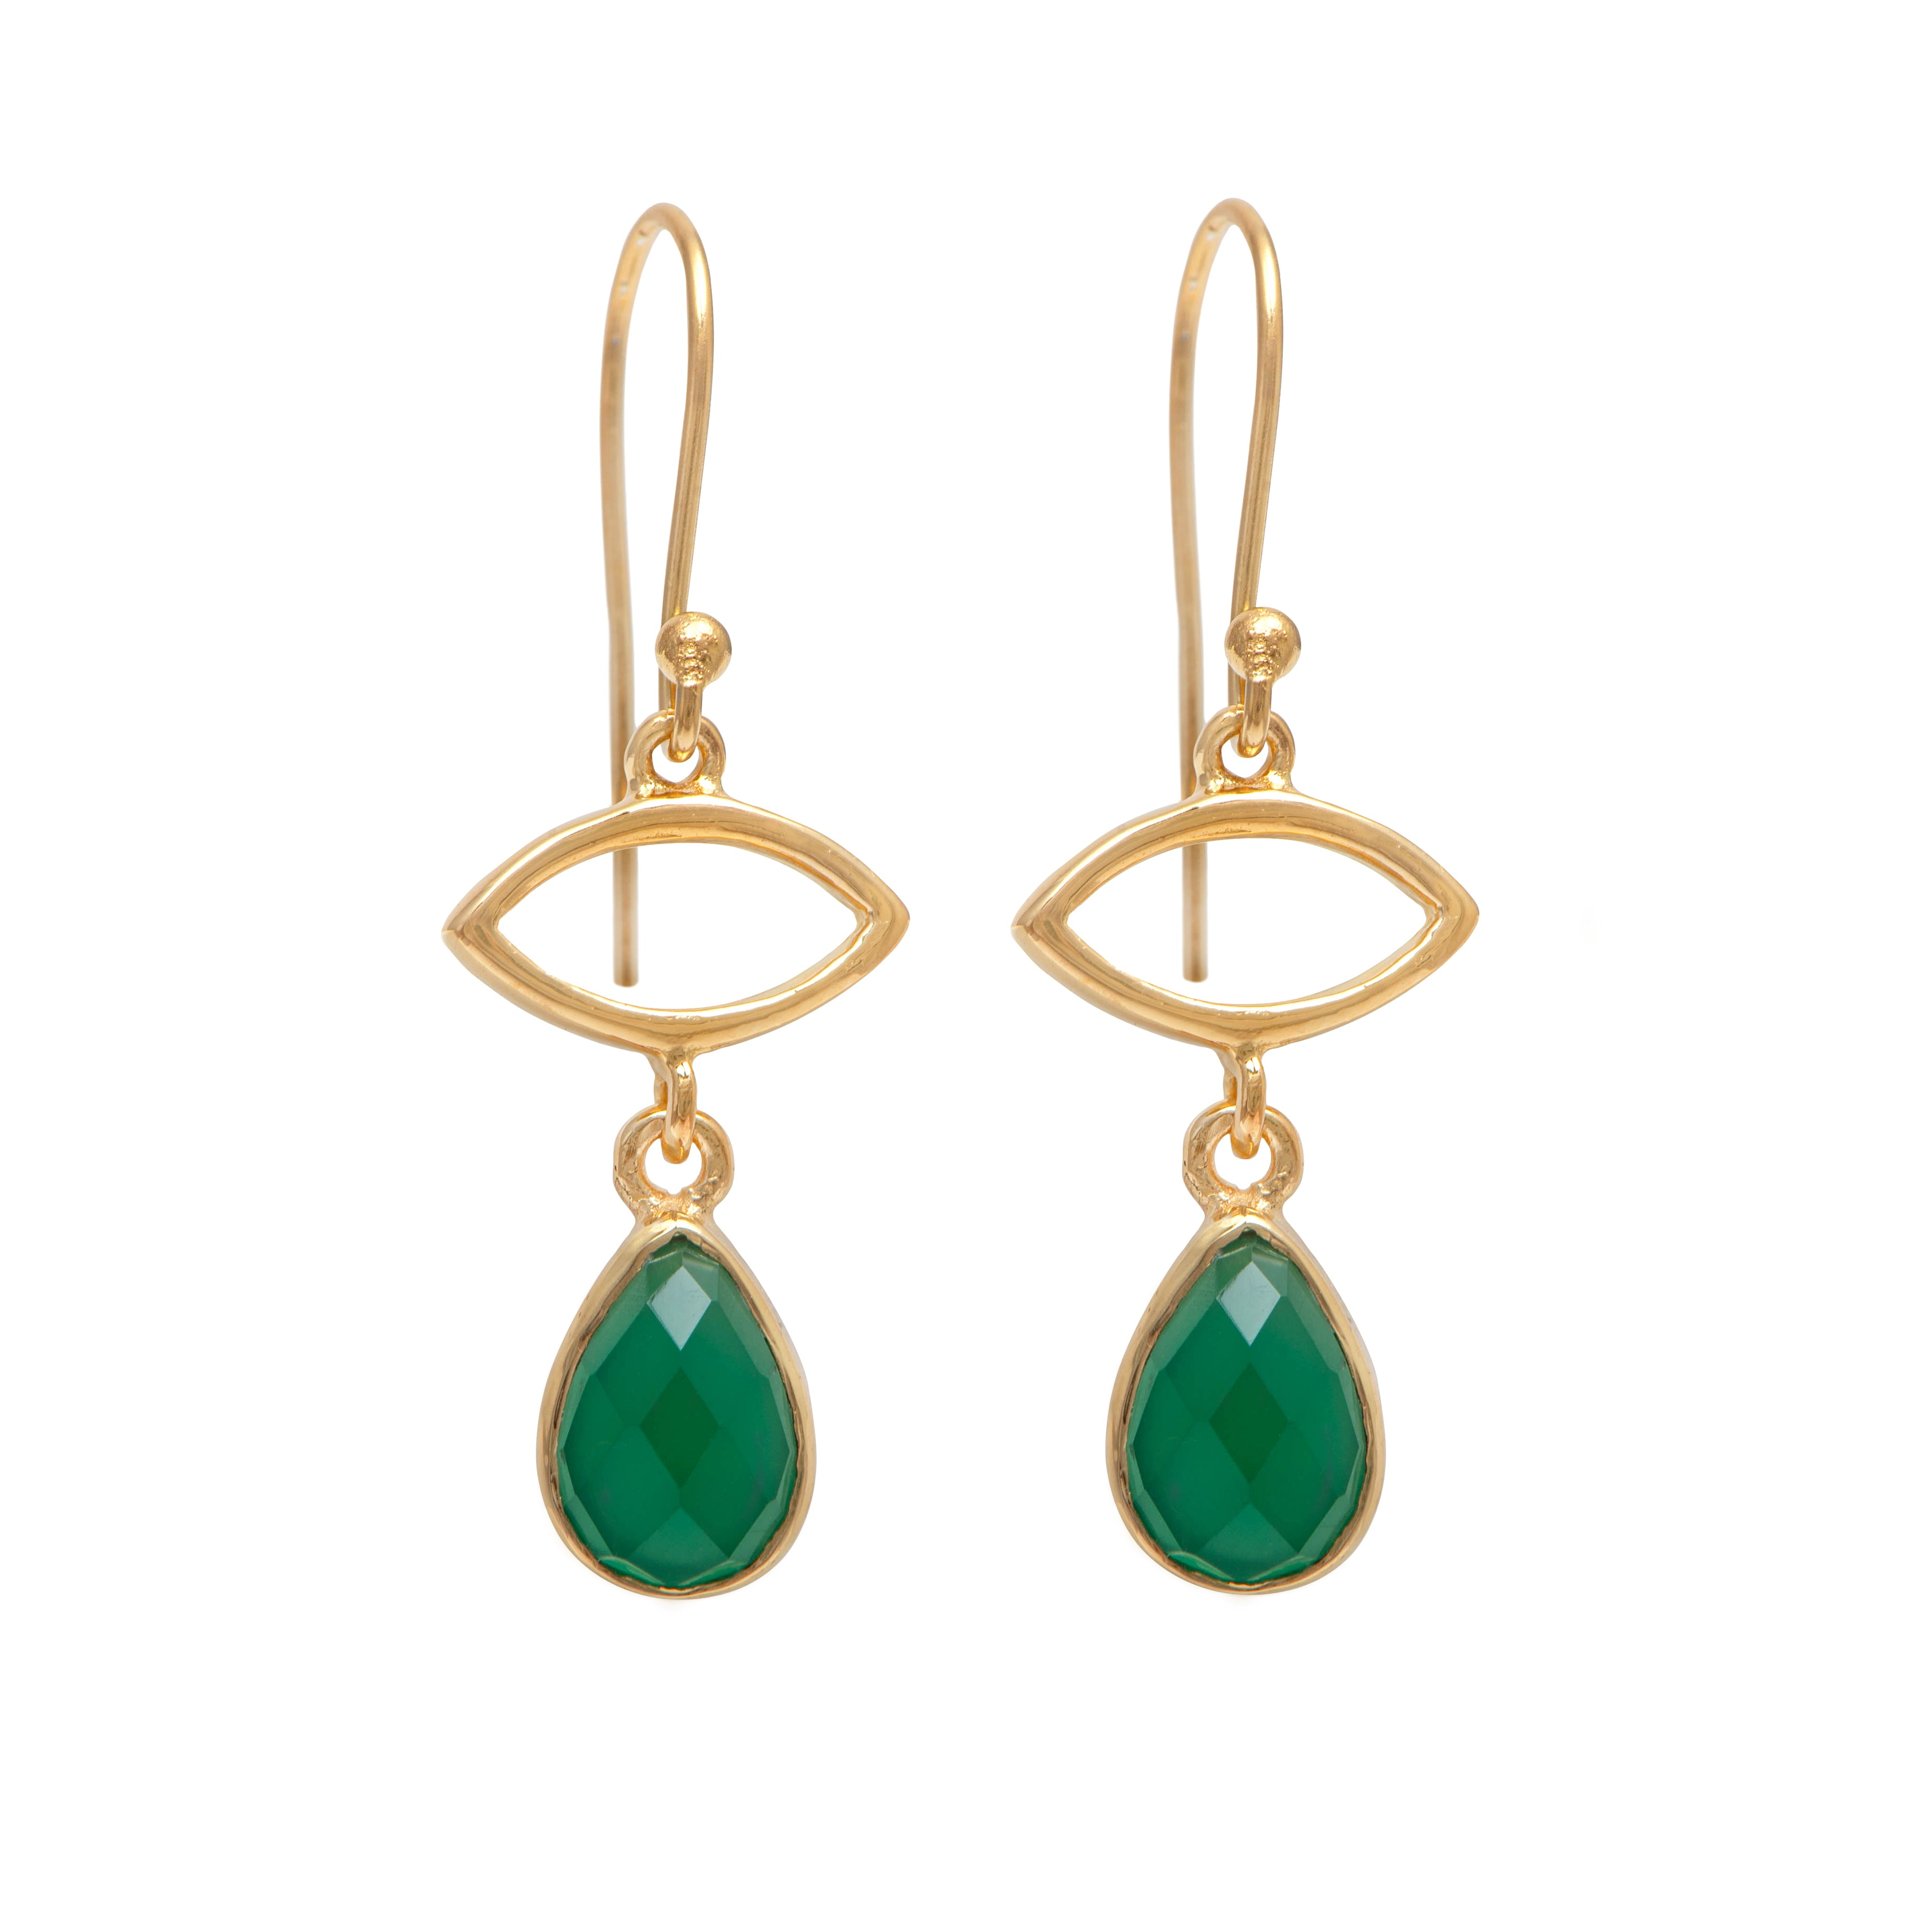 Gold Plated Drop Earrings with Green Onyx Gemstone